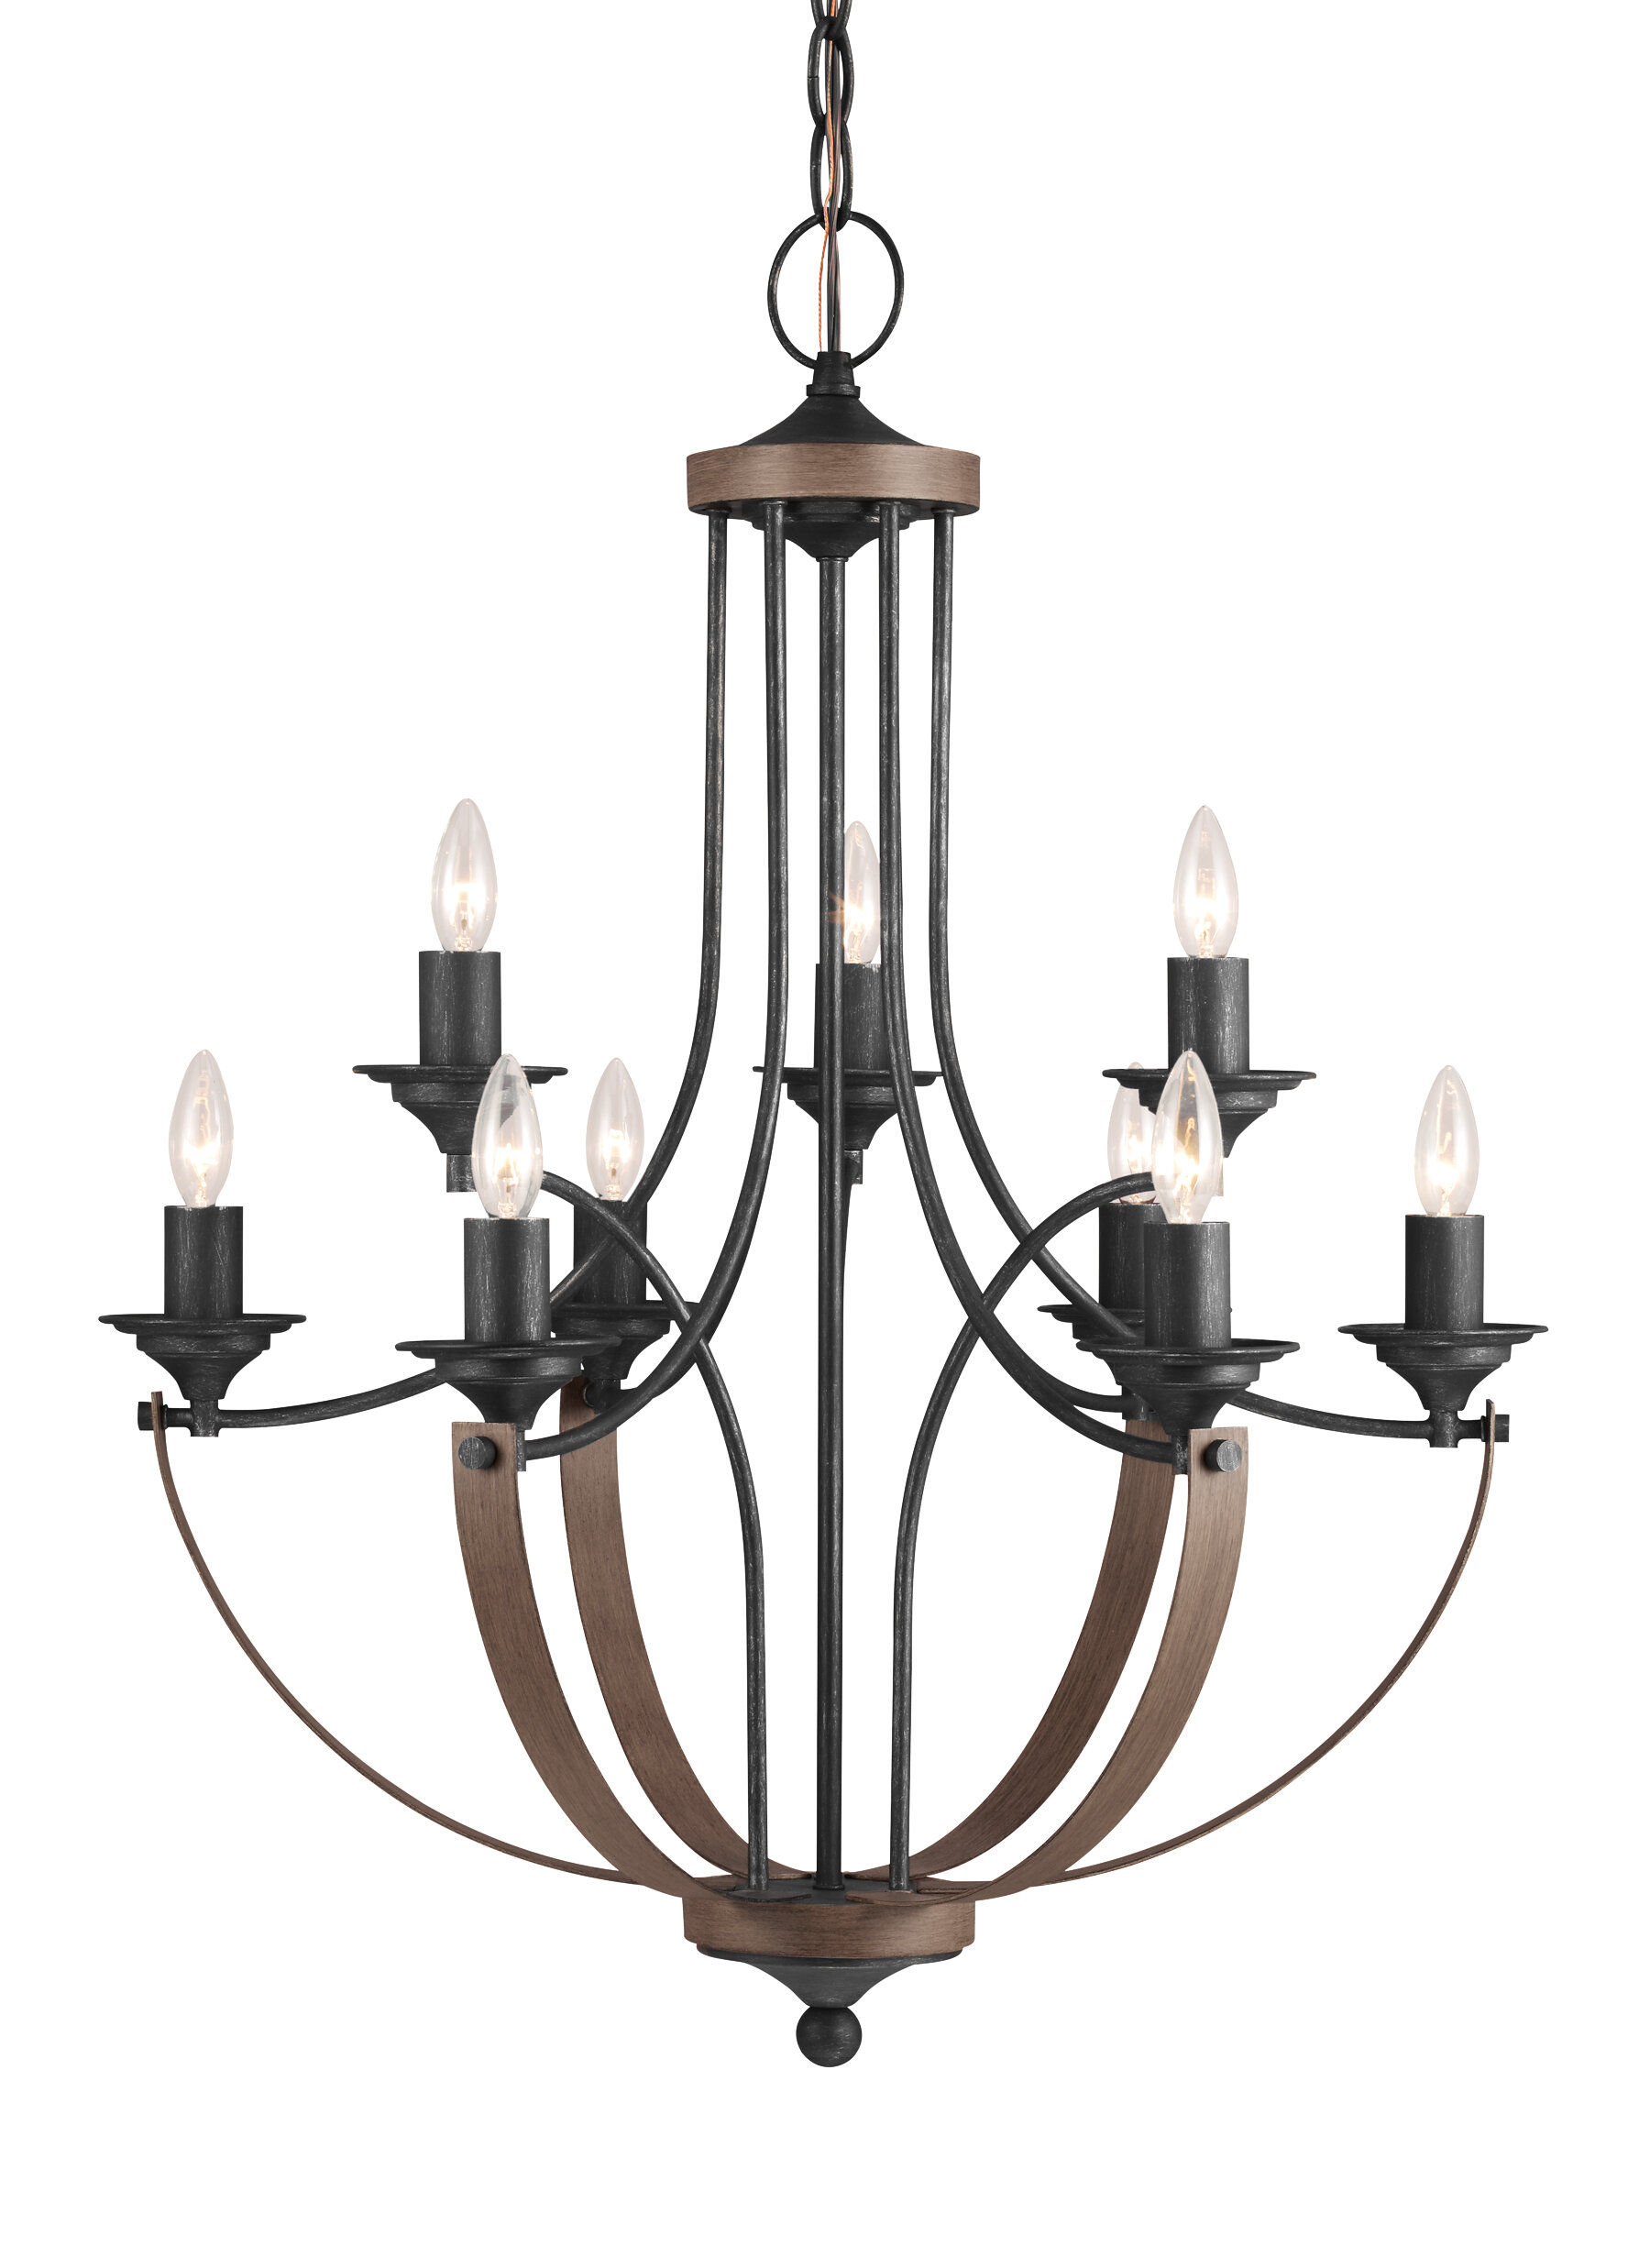 tuscan old living cahndelier world roof sofa fireplace astounding astonishing bronze room black in for candle style with wall table coffee chandeliers rock kithcen breathtaking iron chandelier and